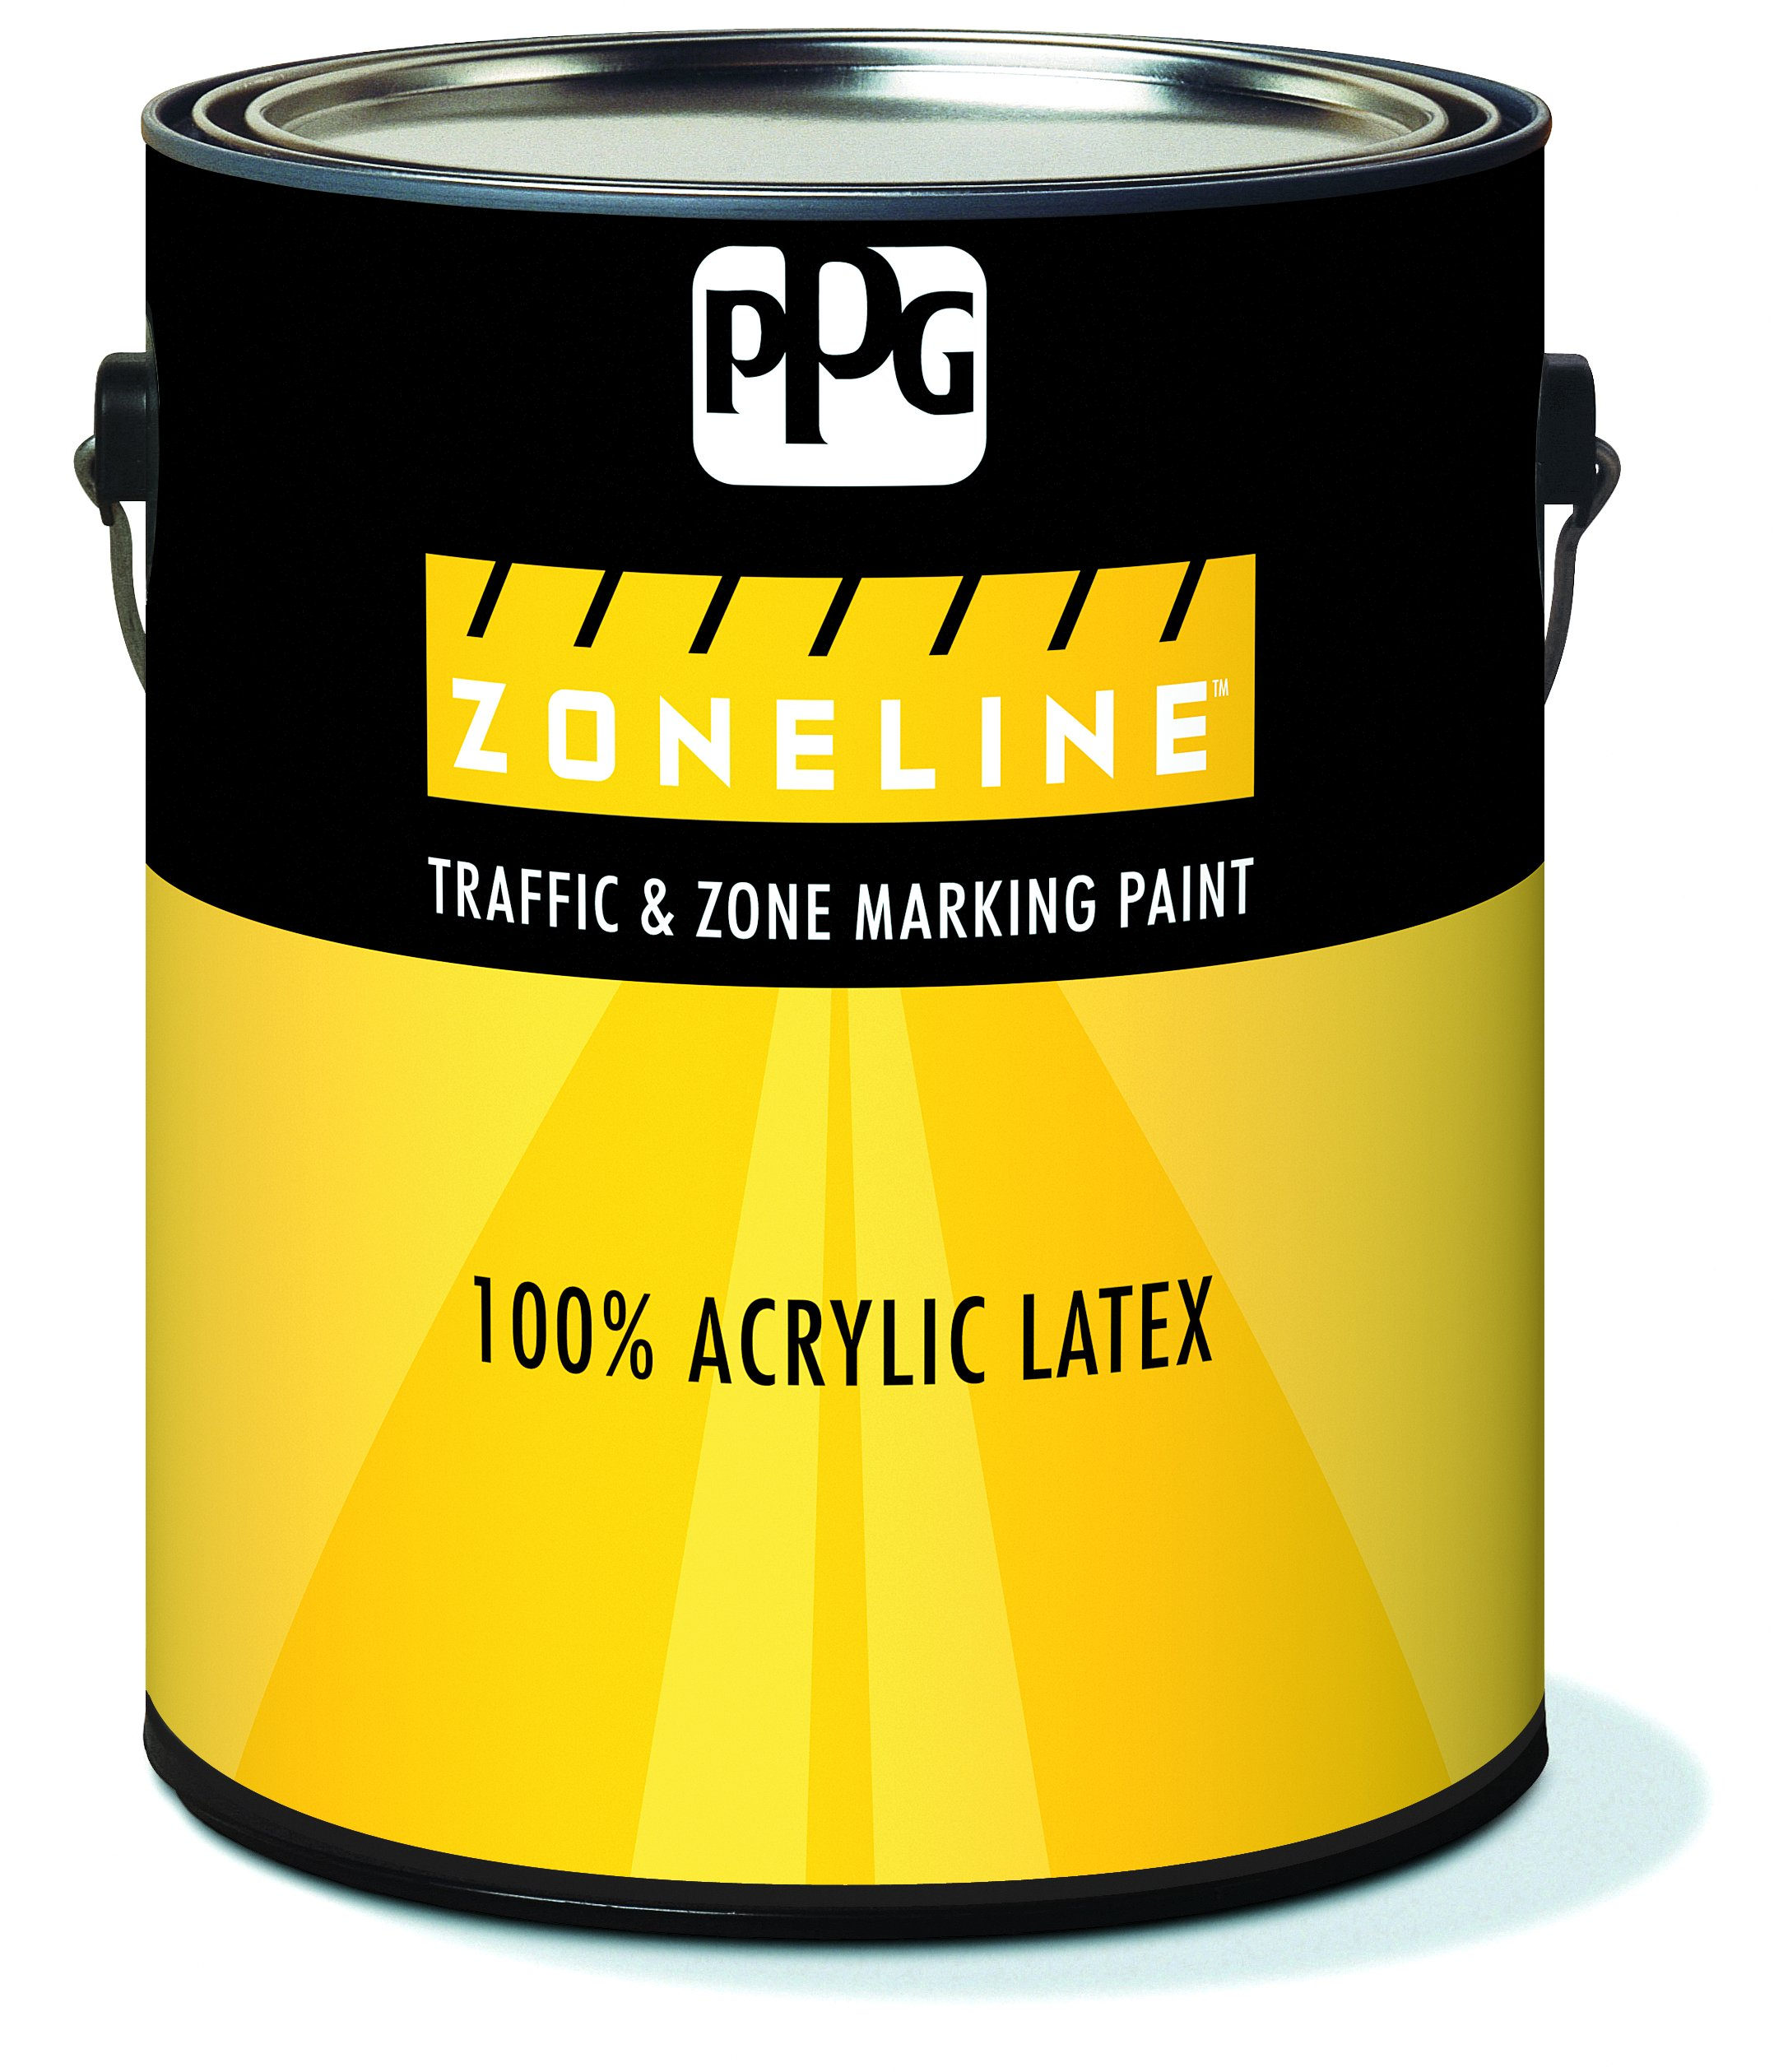 11-54/01 Acrylic Paint, Flat, 1 gal, Zoneline, Traffic and Zone Marking, Yellow